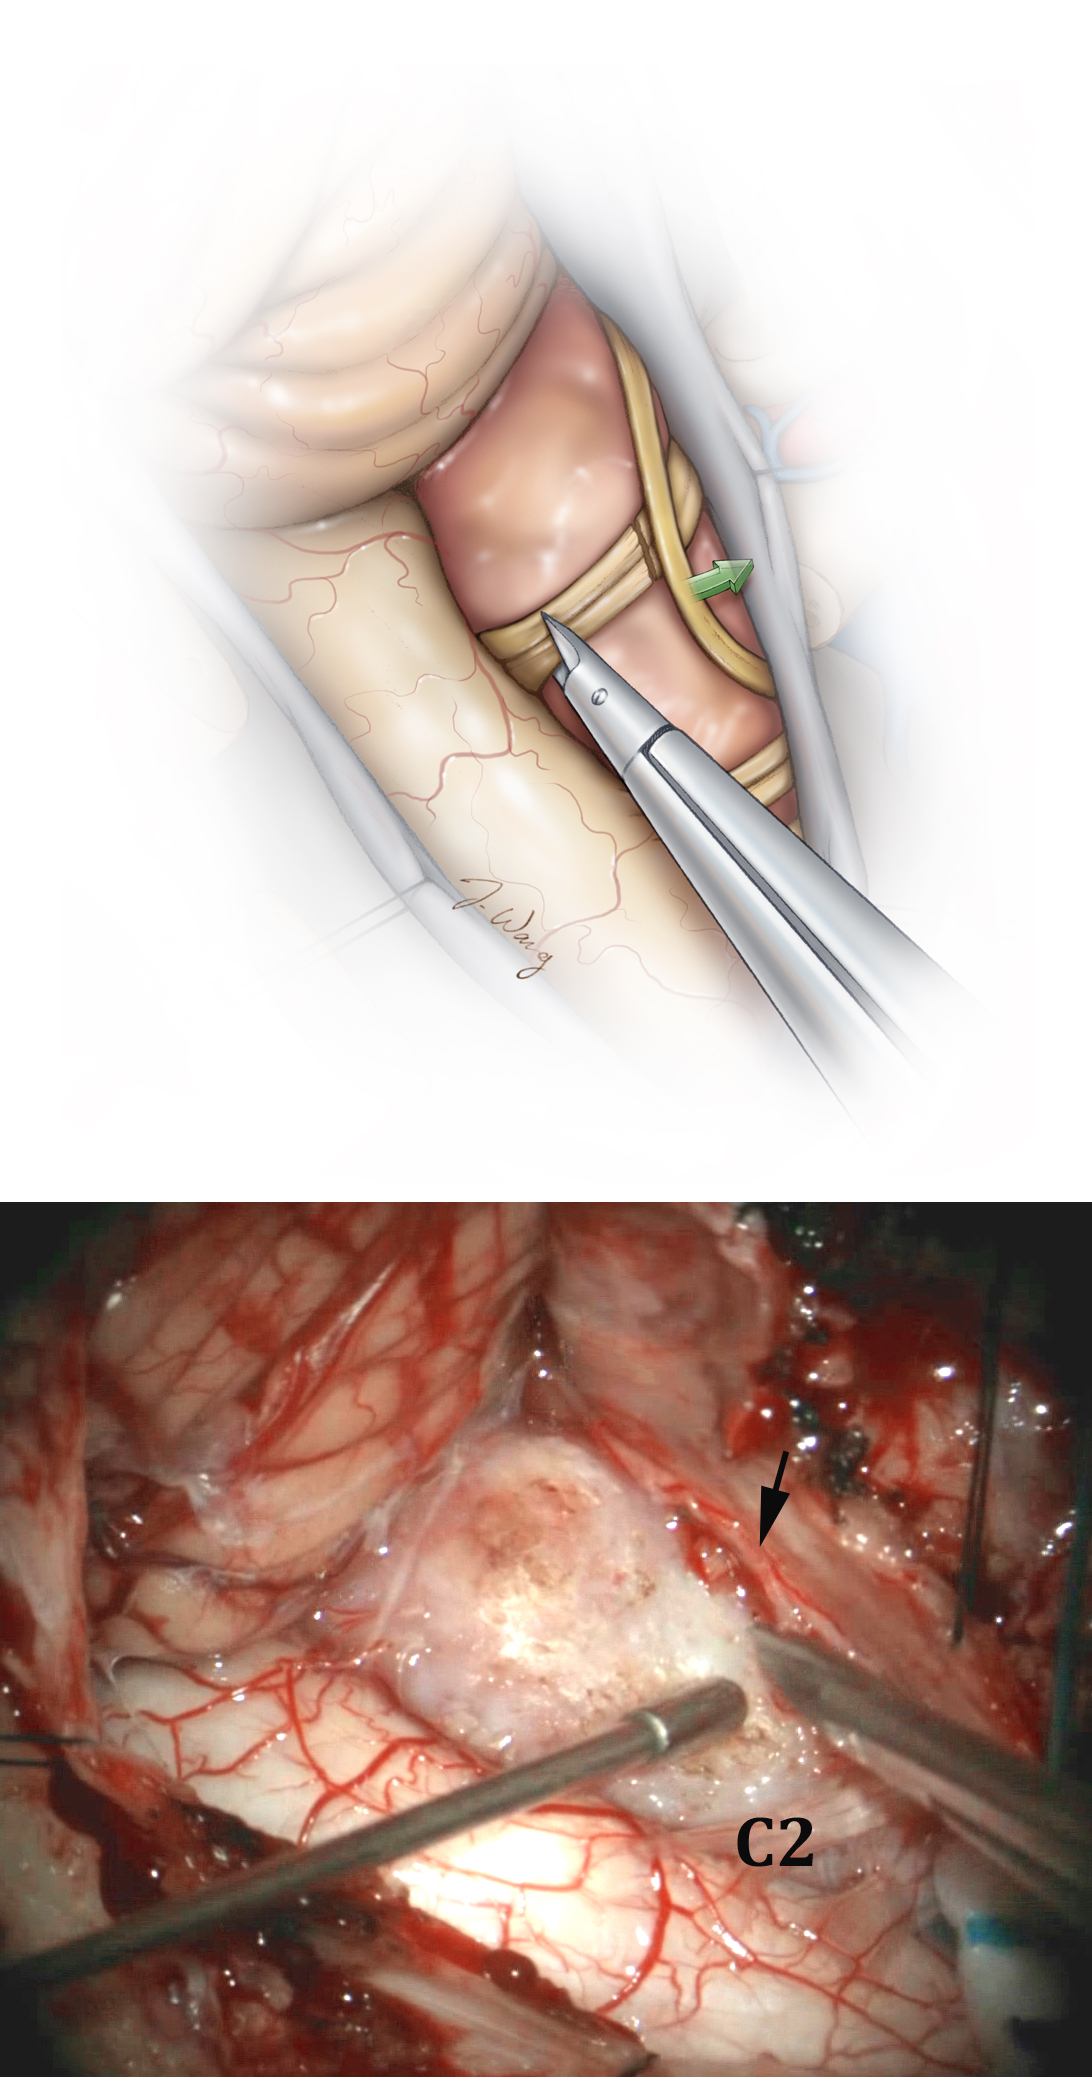 Figure 8: Next, the C1 nerve rootlets are sectioned and CN XI is mobilized laterally (top sketch, green arrow; bottom photo, black arrow). The latter cranial nerve can be adherent to the tumor, and its adhesions are sharply divided. Excitation of the nerve can lead to intermittent movements of the shoulder and surgical target. I often section all rootlets of C1 and one or two spinal rootlets of CN XI to allow adequate exposure of the tumor and mobilization of CN XI. I have not witnessed any significant permanent postoperative shoulder weakness because of this maneuver. The tumor capsule is coagulated.